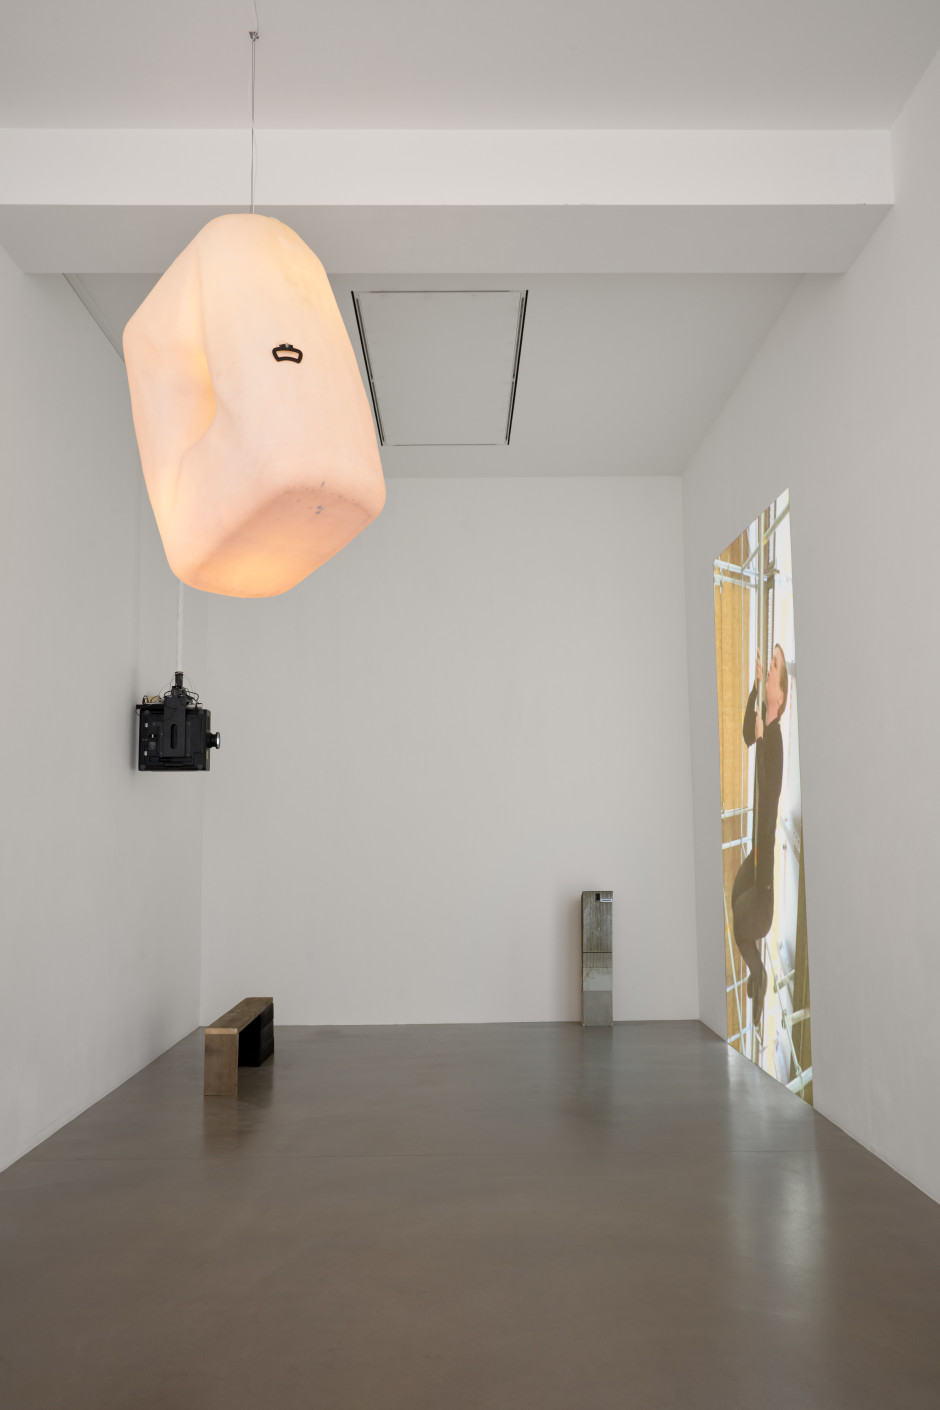 Installation view, Klara Liden, 1 Davies Street W1, 3 September - 24 October 2020  Photography by Robert Glowacki